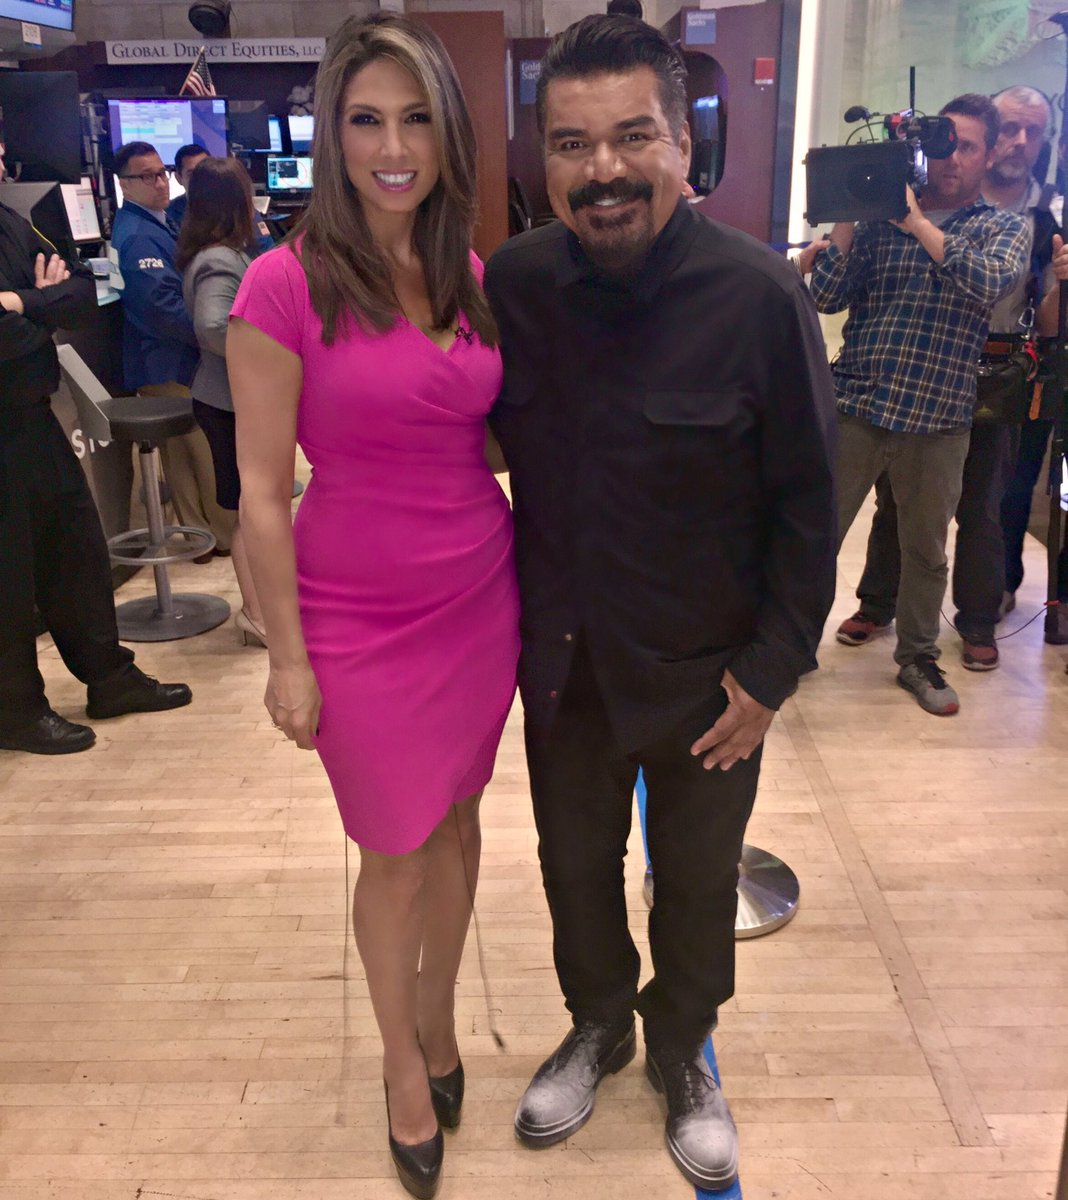 Nicole Petallides On Twitter Hollywood At Georgelopez Actor